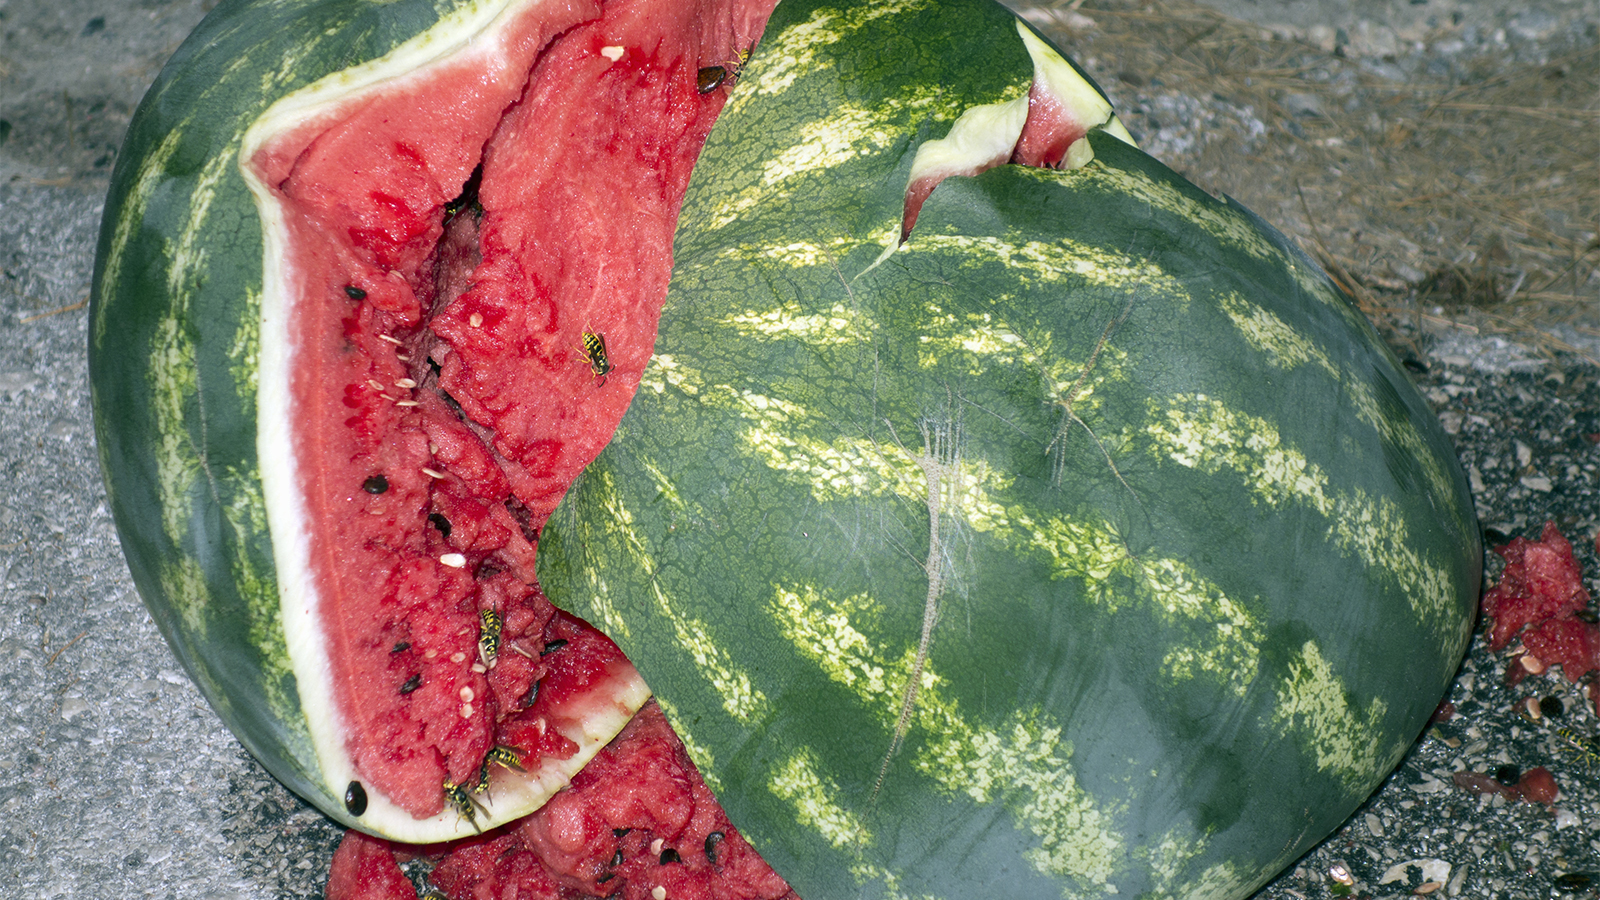 When Bad Watermelons Explode on Good People